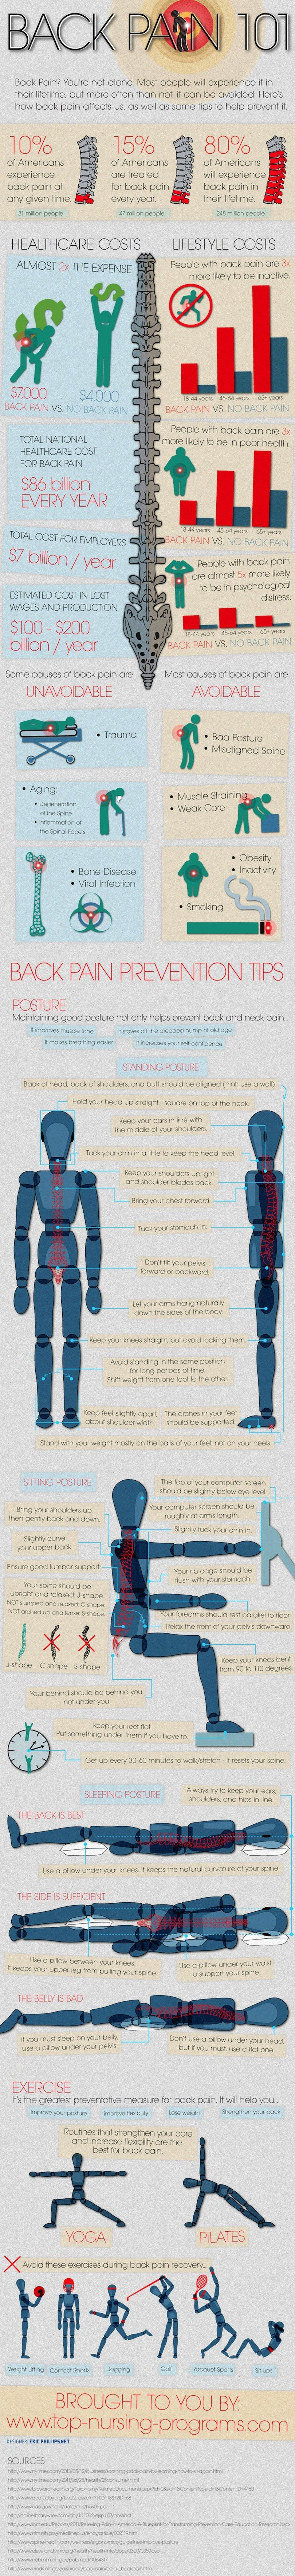 36 Tips For Back Pain Infographic